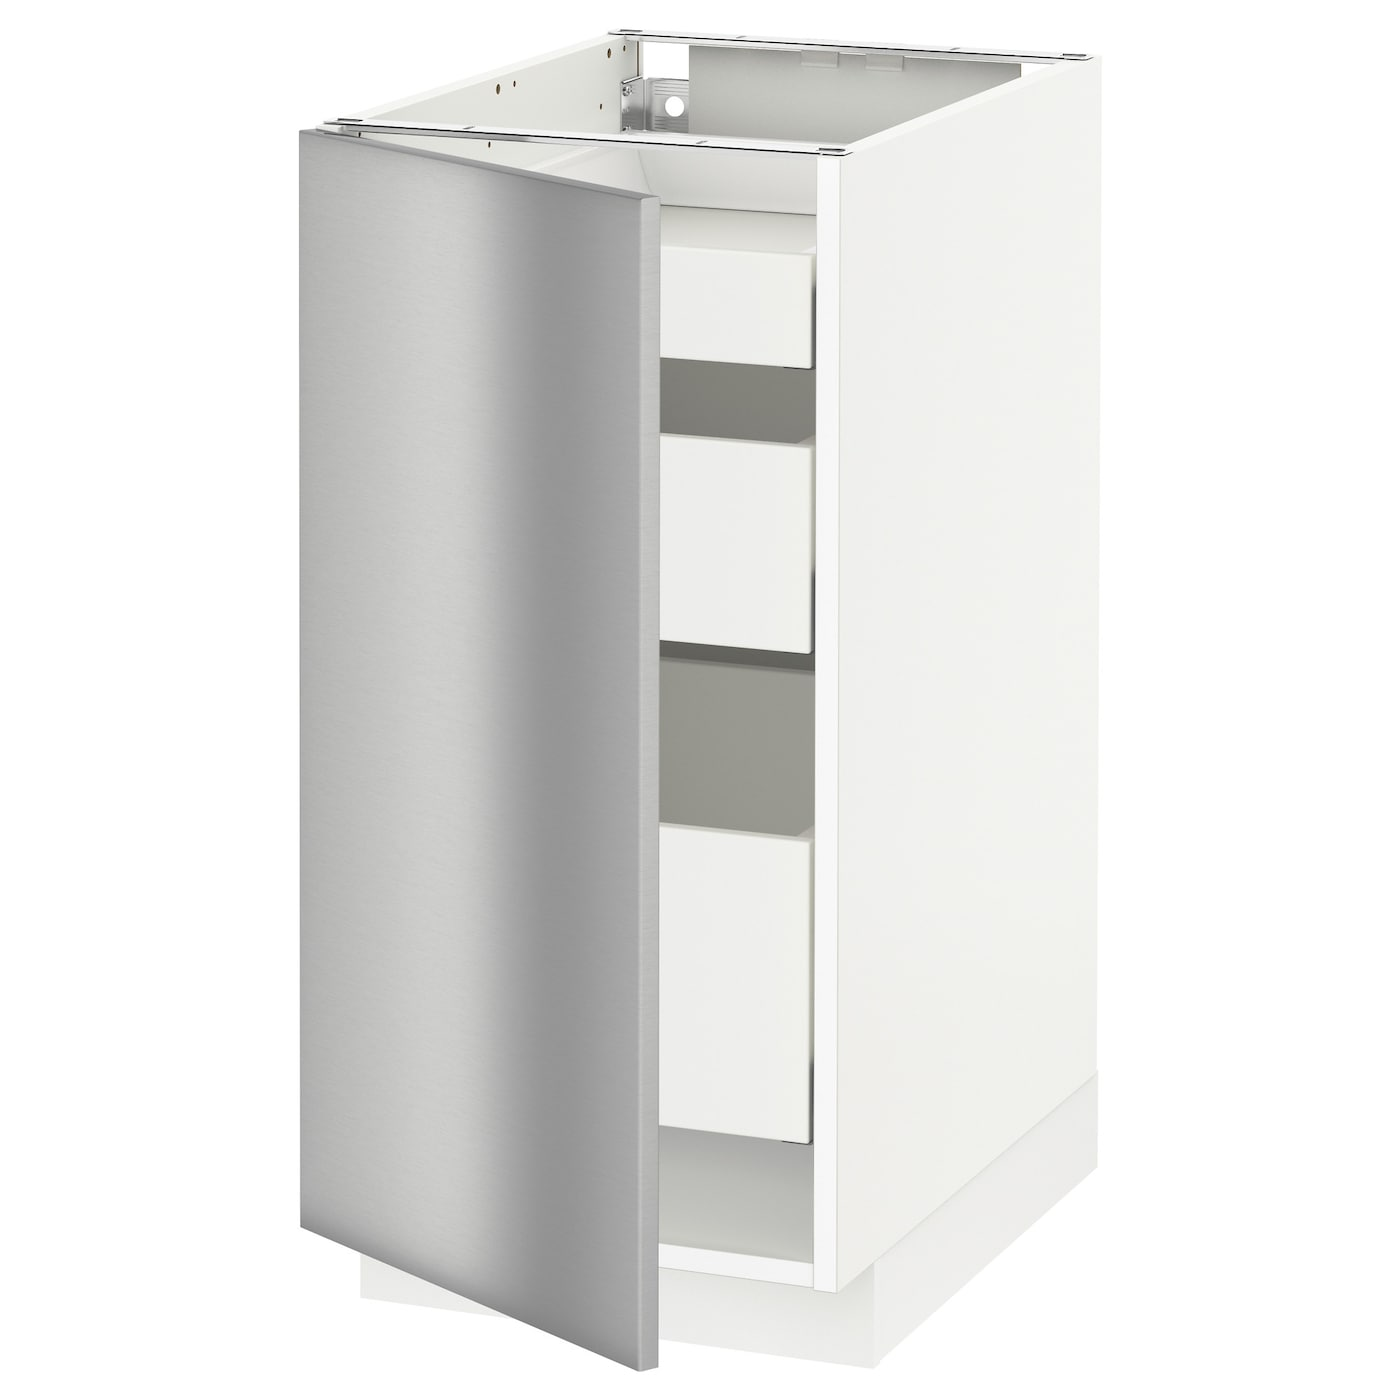 Metod maximera base cabinet with 1 door 3 drawers white for Stainless steel kitchen base cabinets